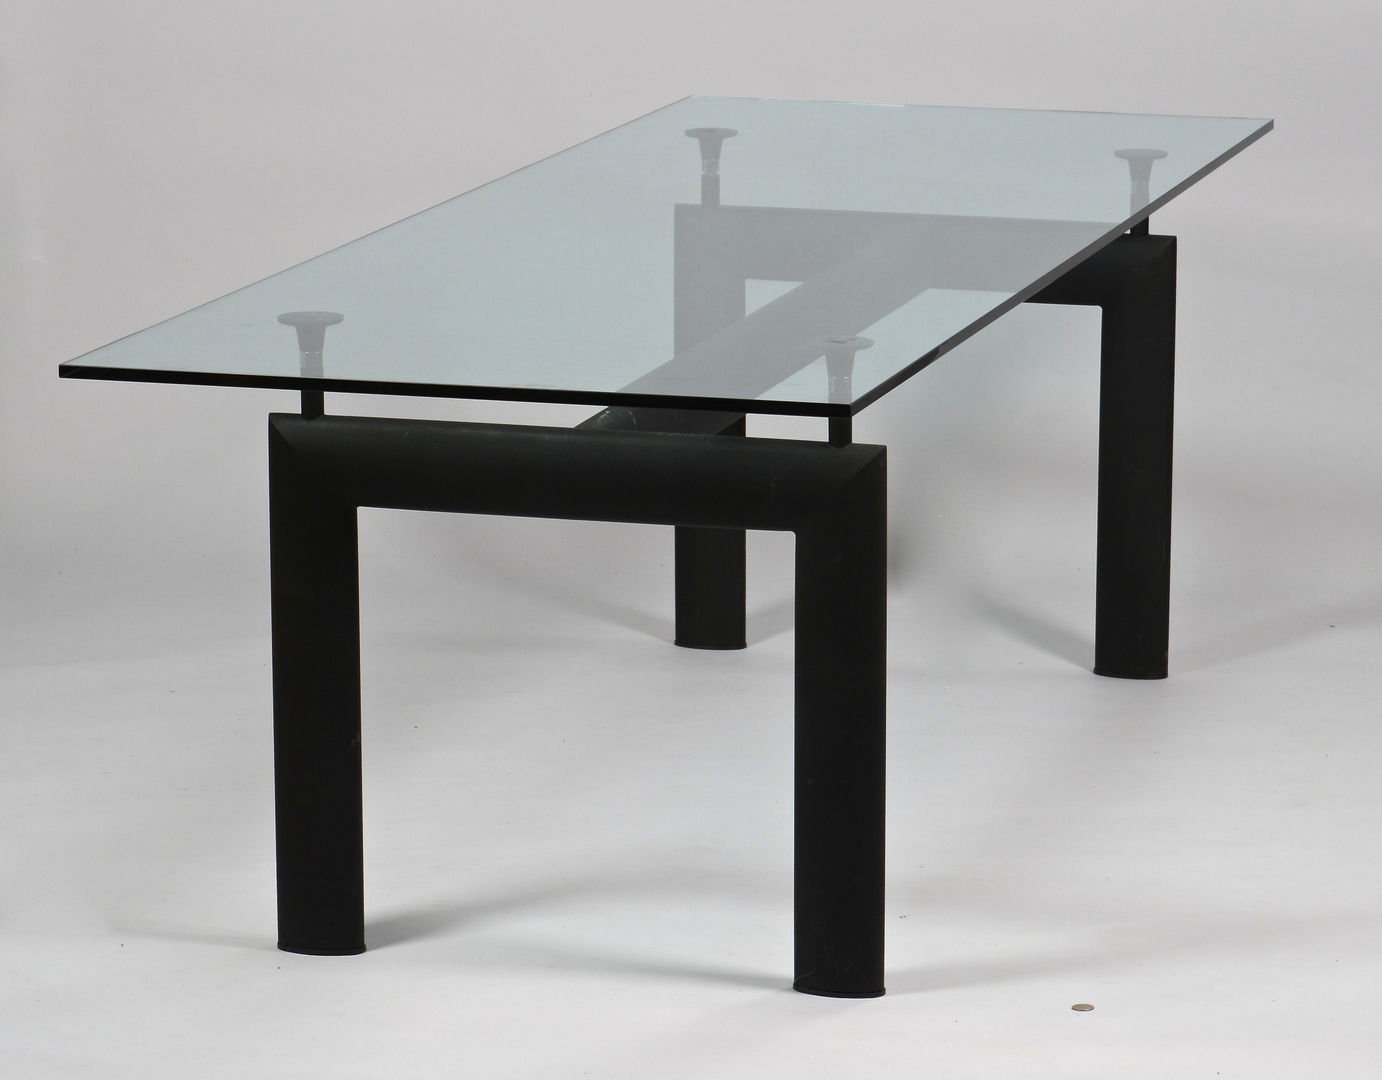 lot 450 le corbusier lc6 glass dining table. Black Bedroom Furniture Sets. Home Design Ideas